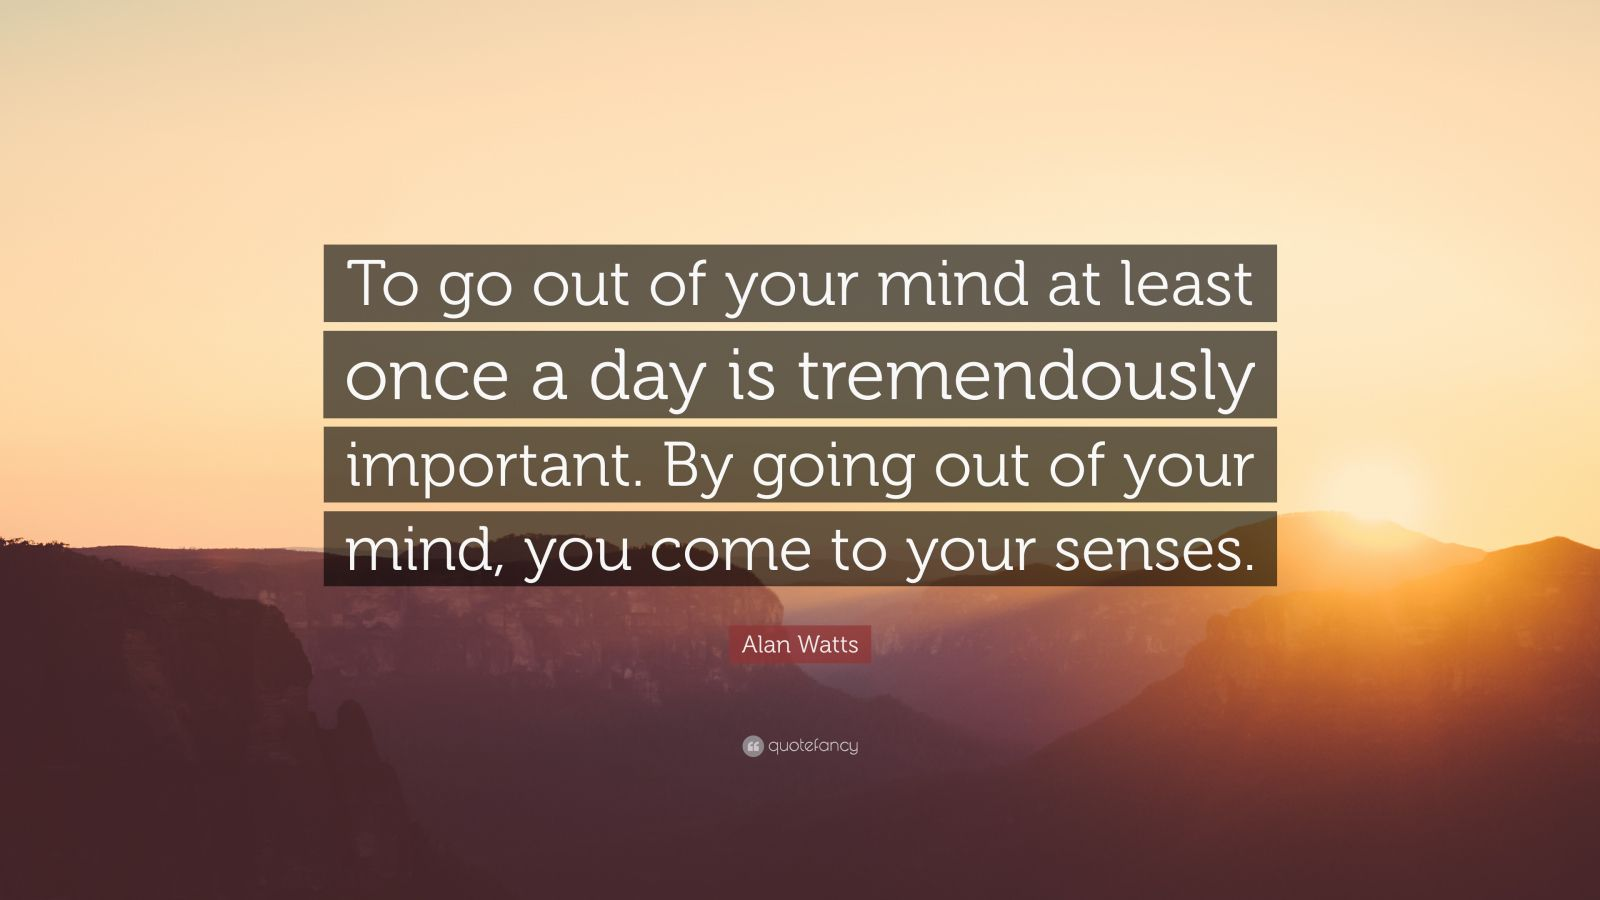 Poetry Love Quotes Wallpaper Alan Watts Quote To Go Out Of Your Mind At Least Once A